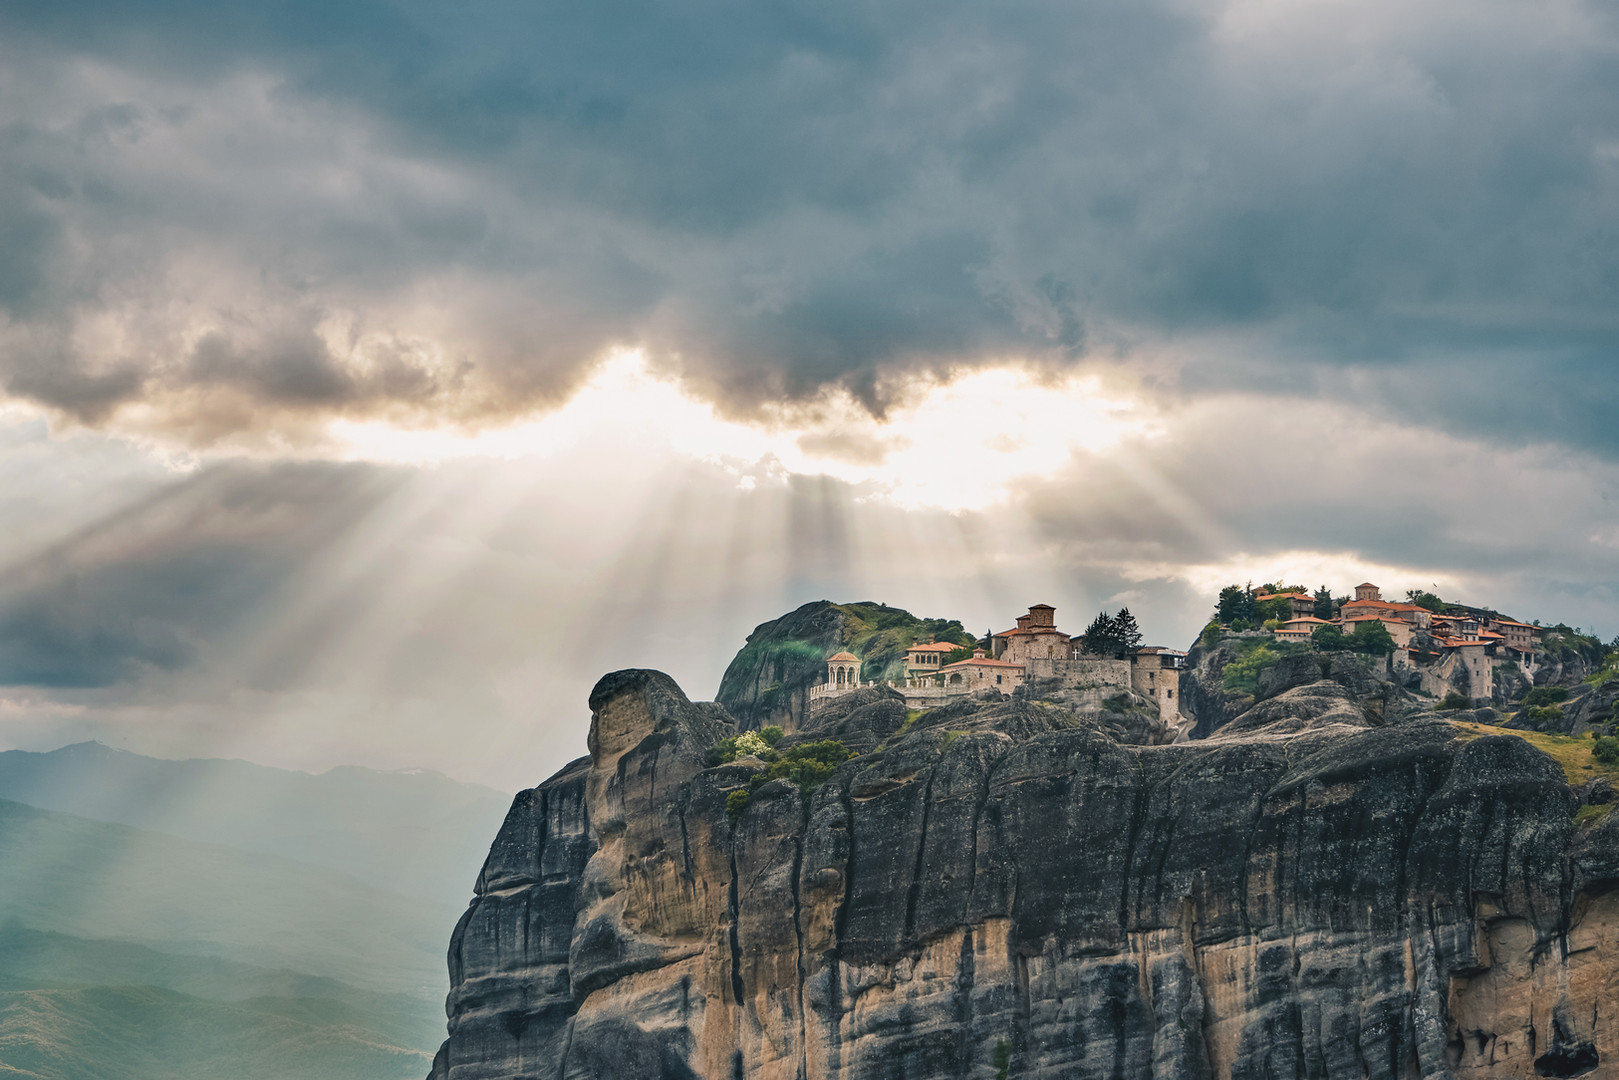 sunset-of-meteora-greece-meteora-rocks-l